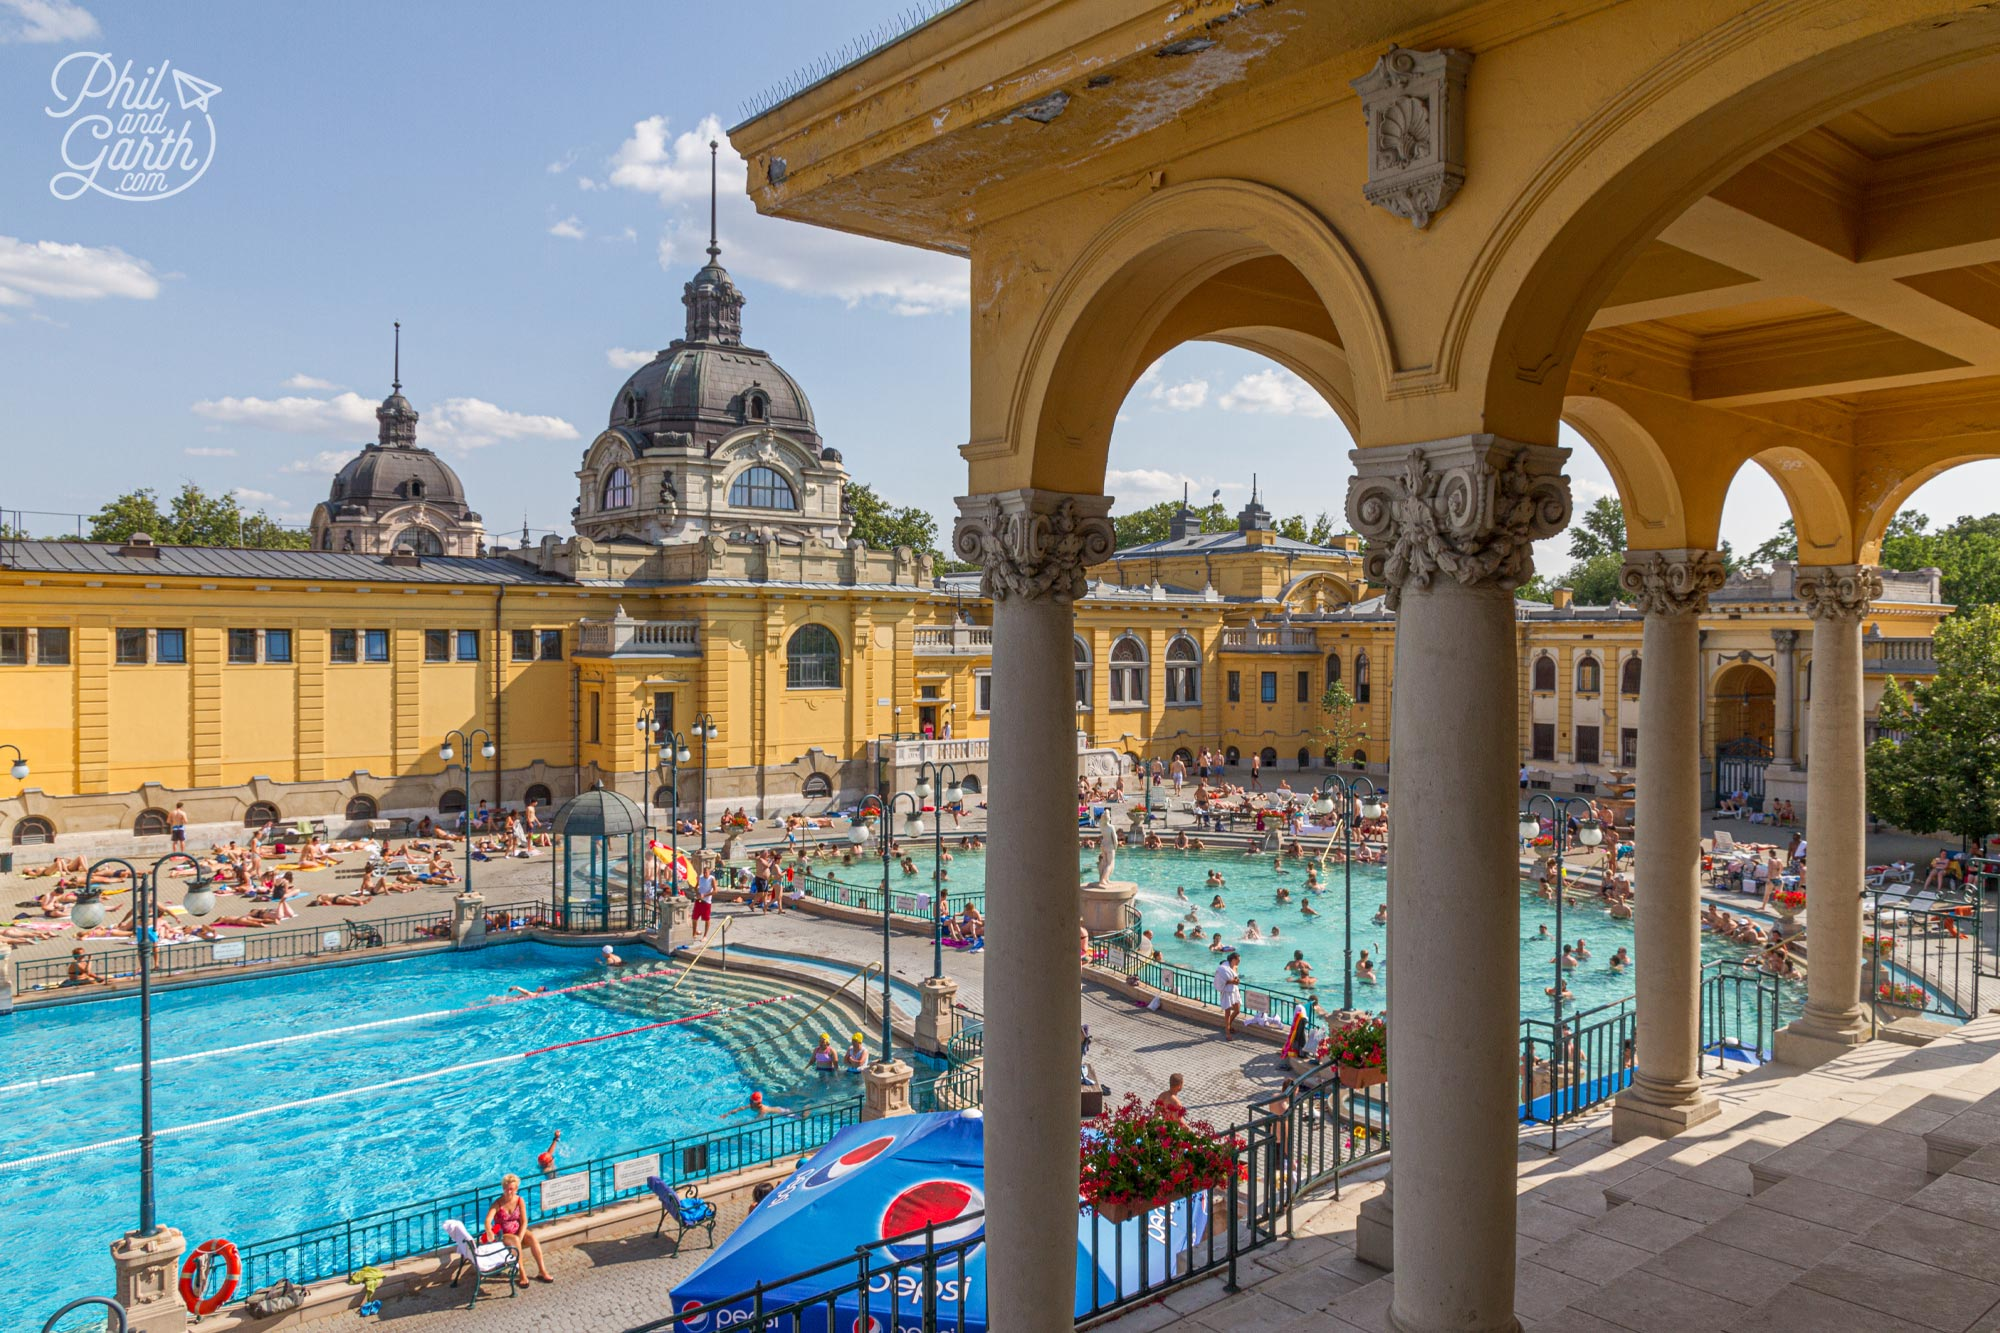 The Széchenyi Baths was built in 1913 and is the largest thermal spent bath complex in Budapest